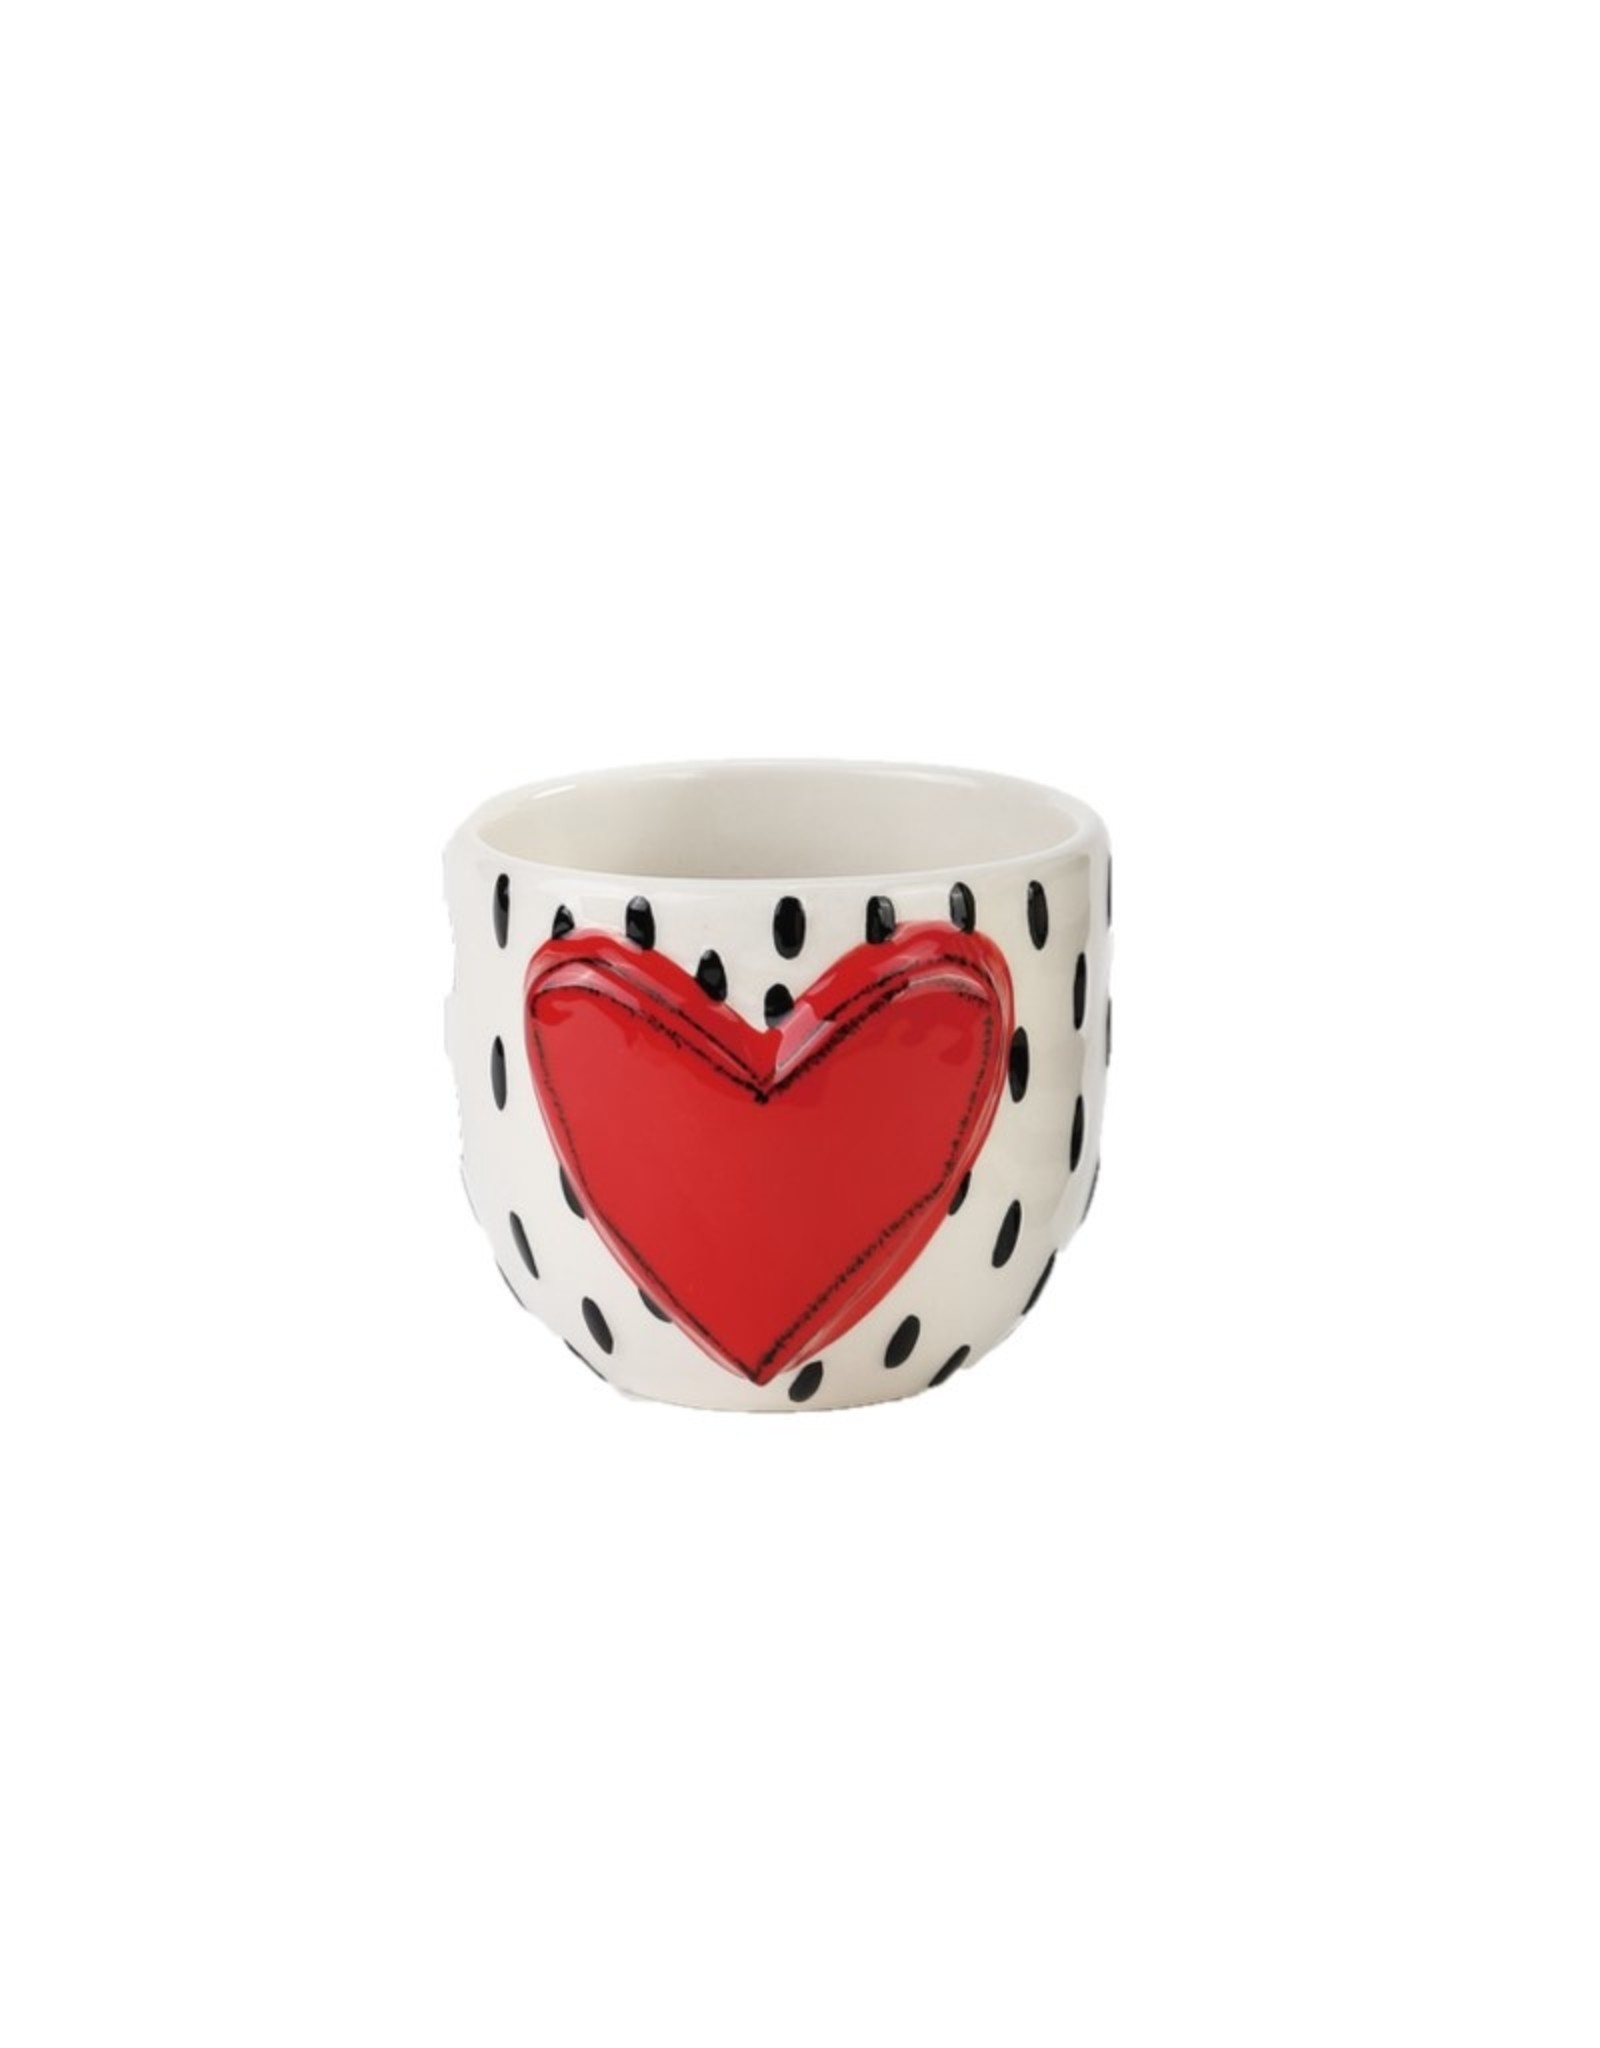 Tracy Pesche Heart Vase - Red Heart